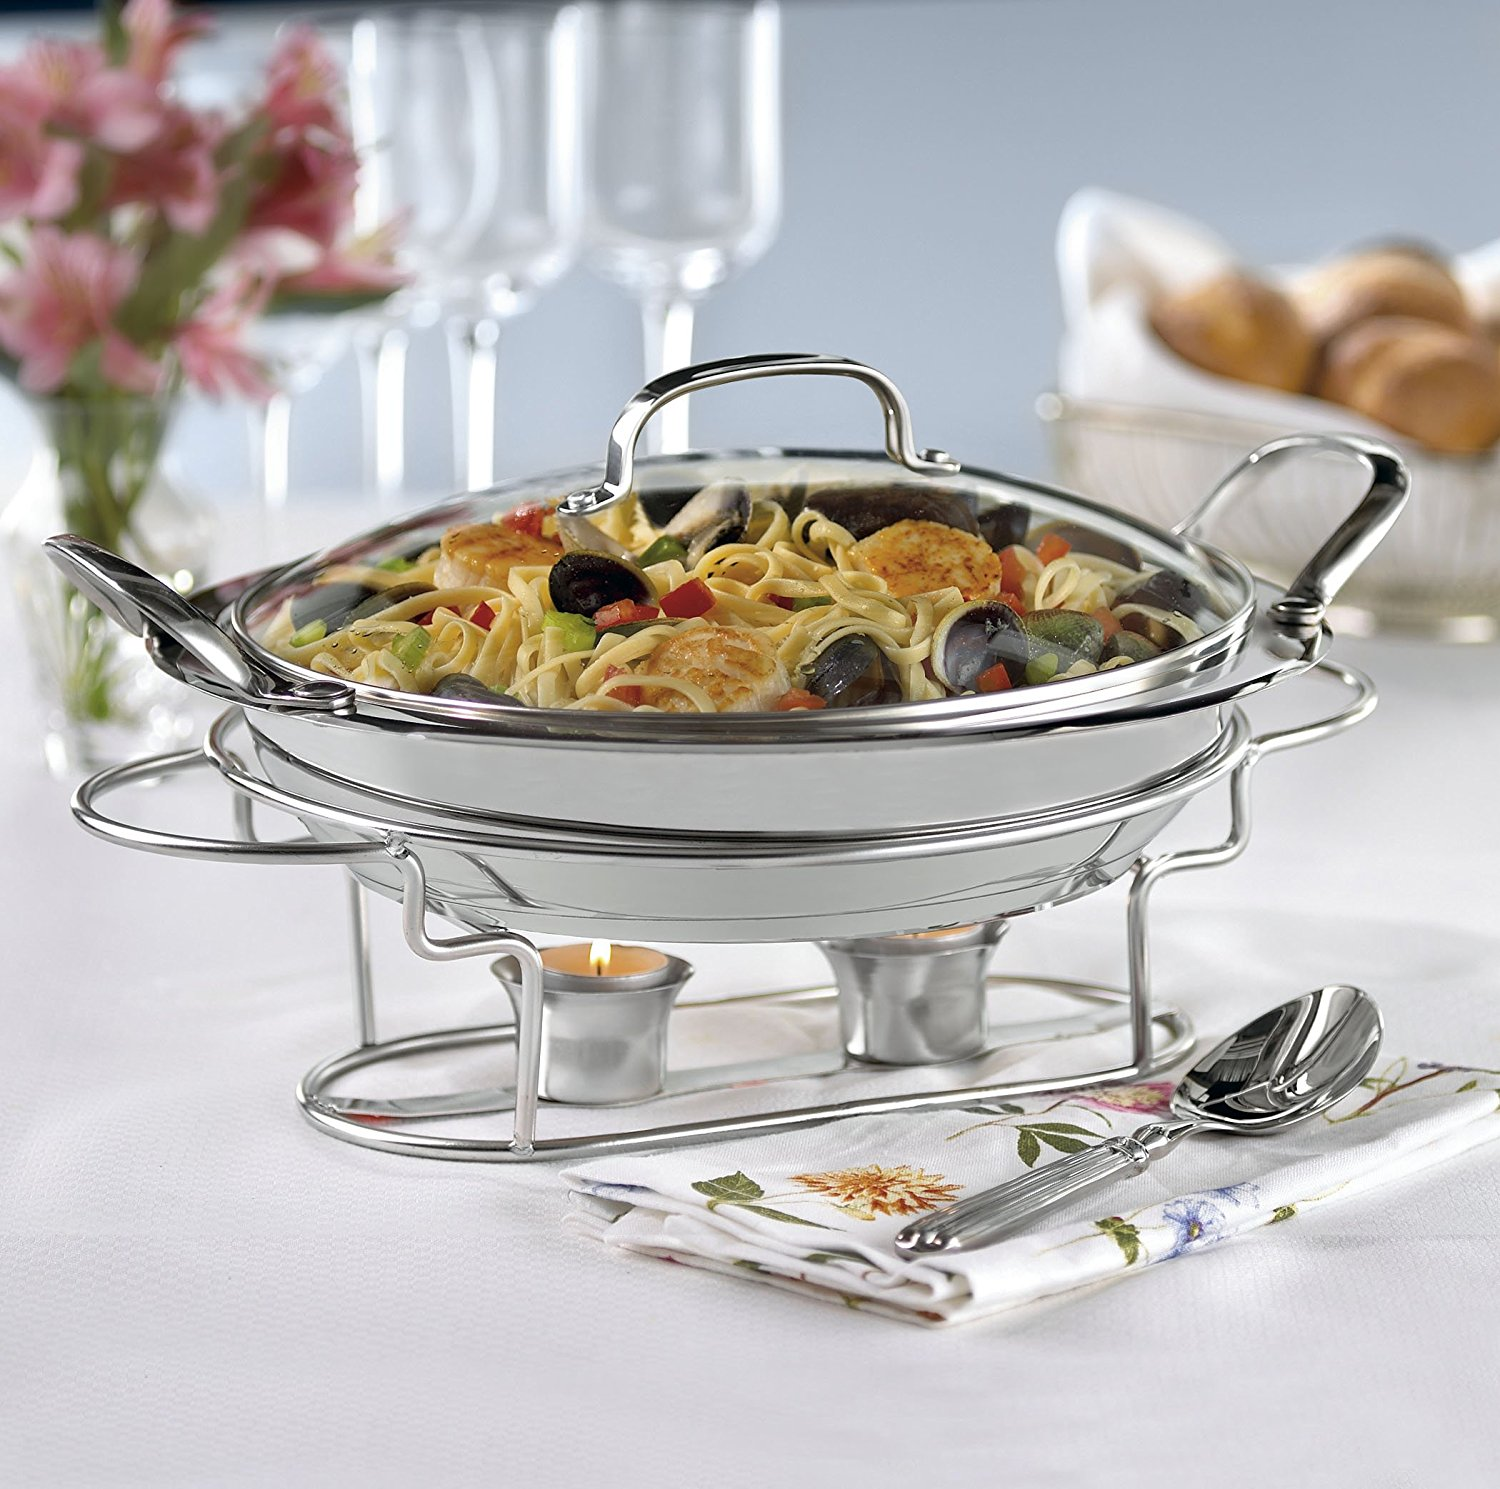 Round Chafing Dish Elegance Pic